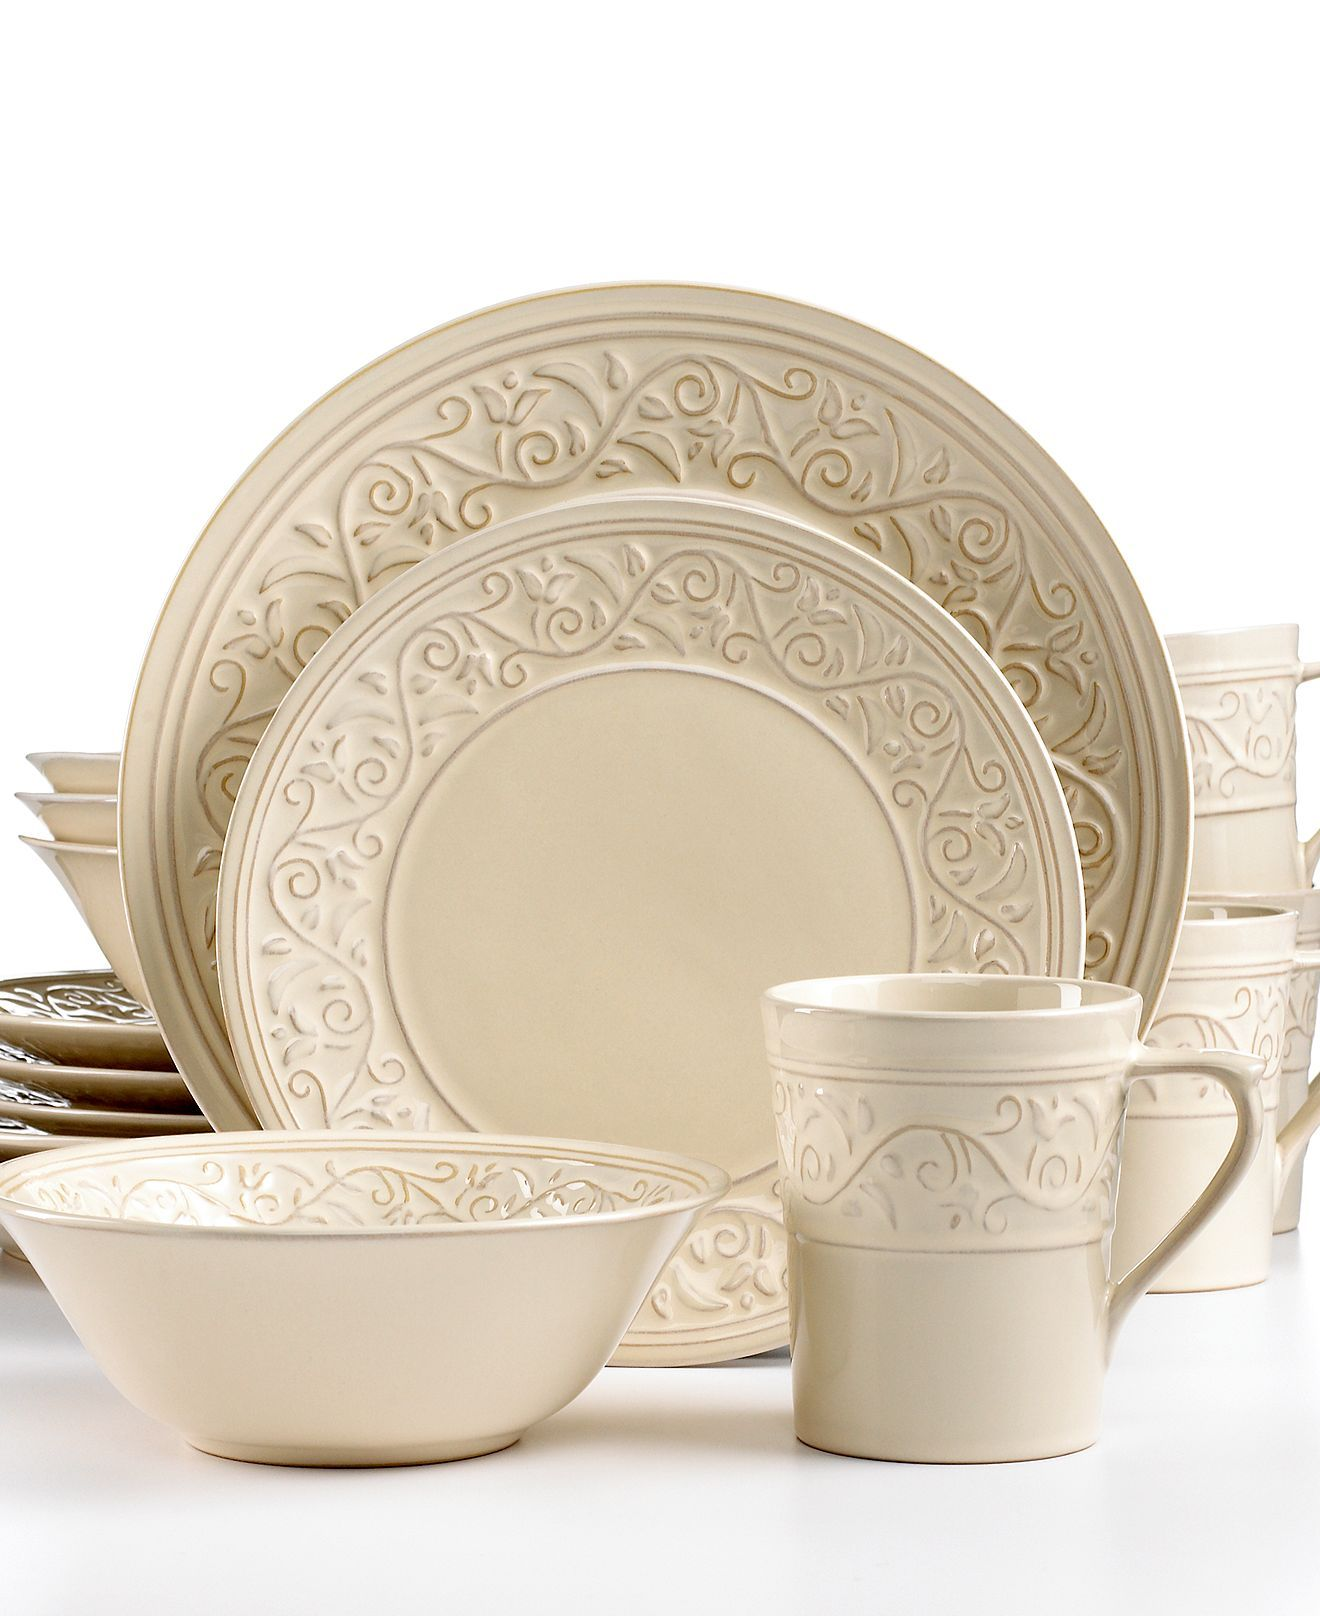 Signature Living Dinnerware Signal Hill Cream 16 Piece Set - Casual Dinnerware - Dining u0026  sc 1 st  Pinterest & Signature Living Dinnerware Signal Hill Cream 16 Piece Set - Casual ...